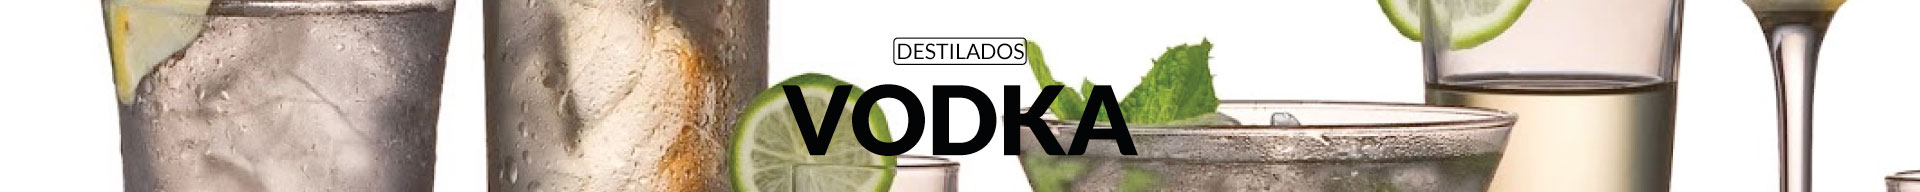 Destilados Vodka